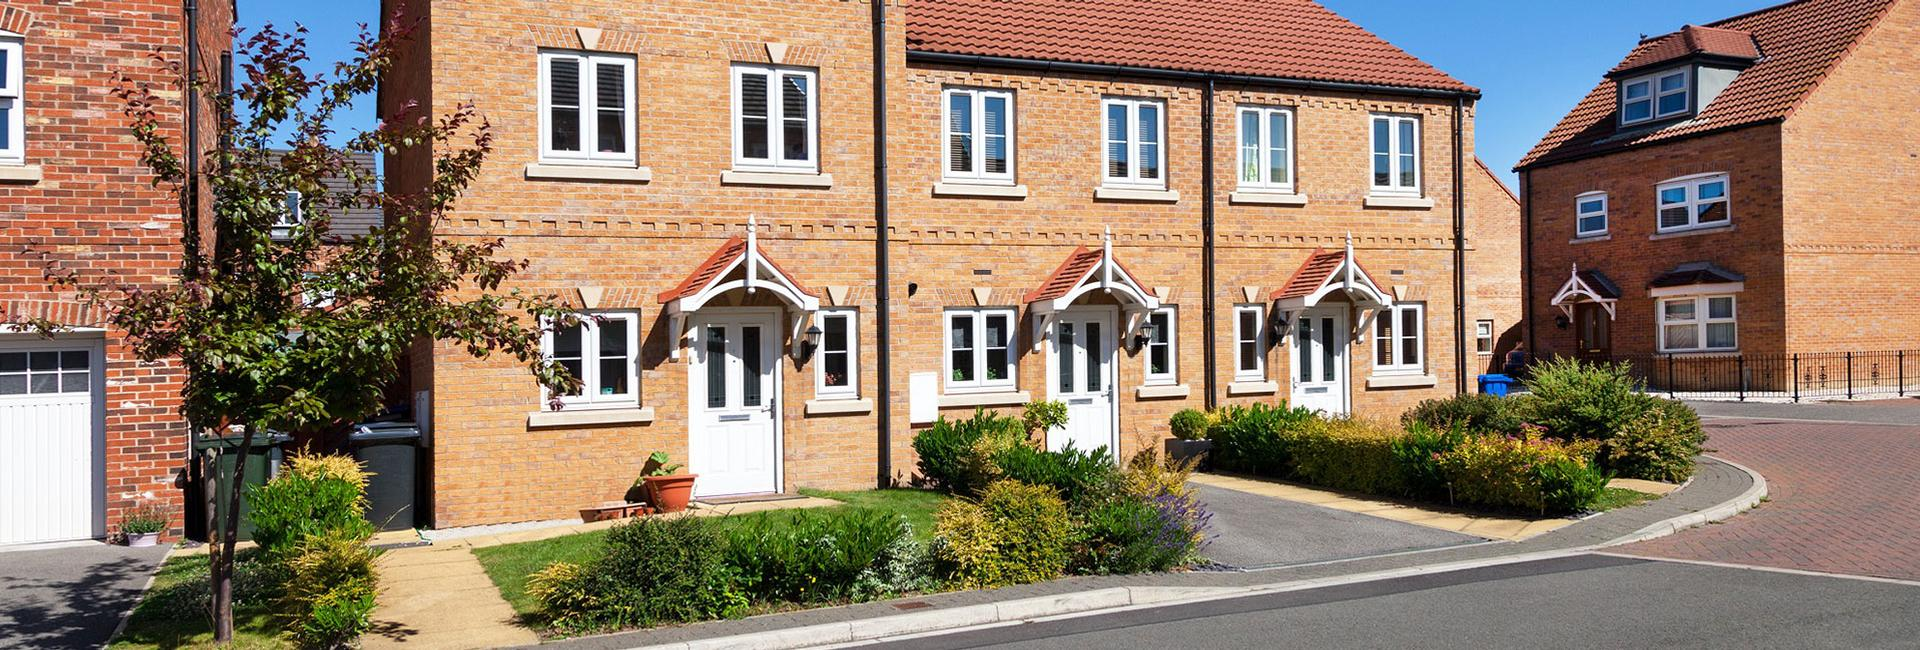 New build properties - UK property activity report from the Property Activity Index